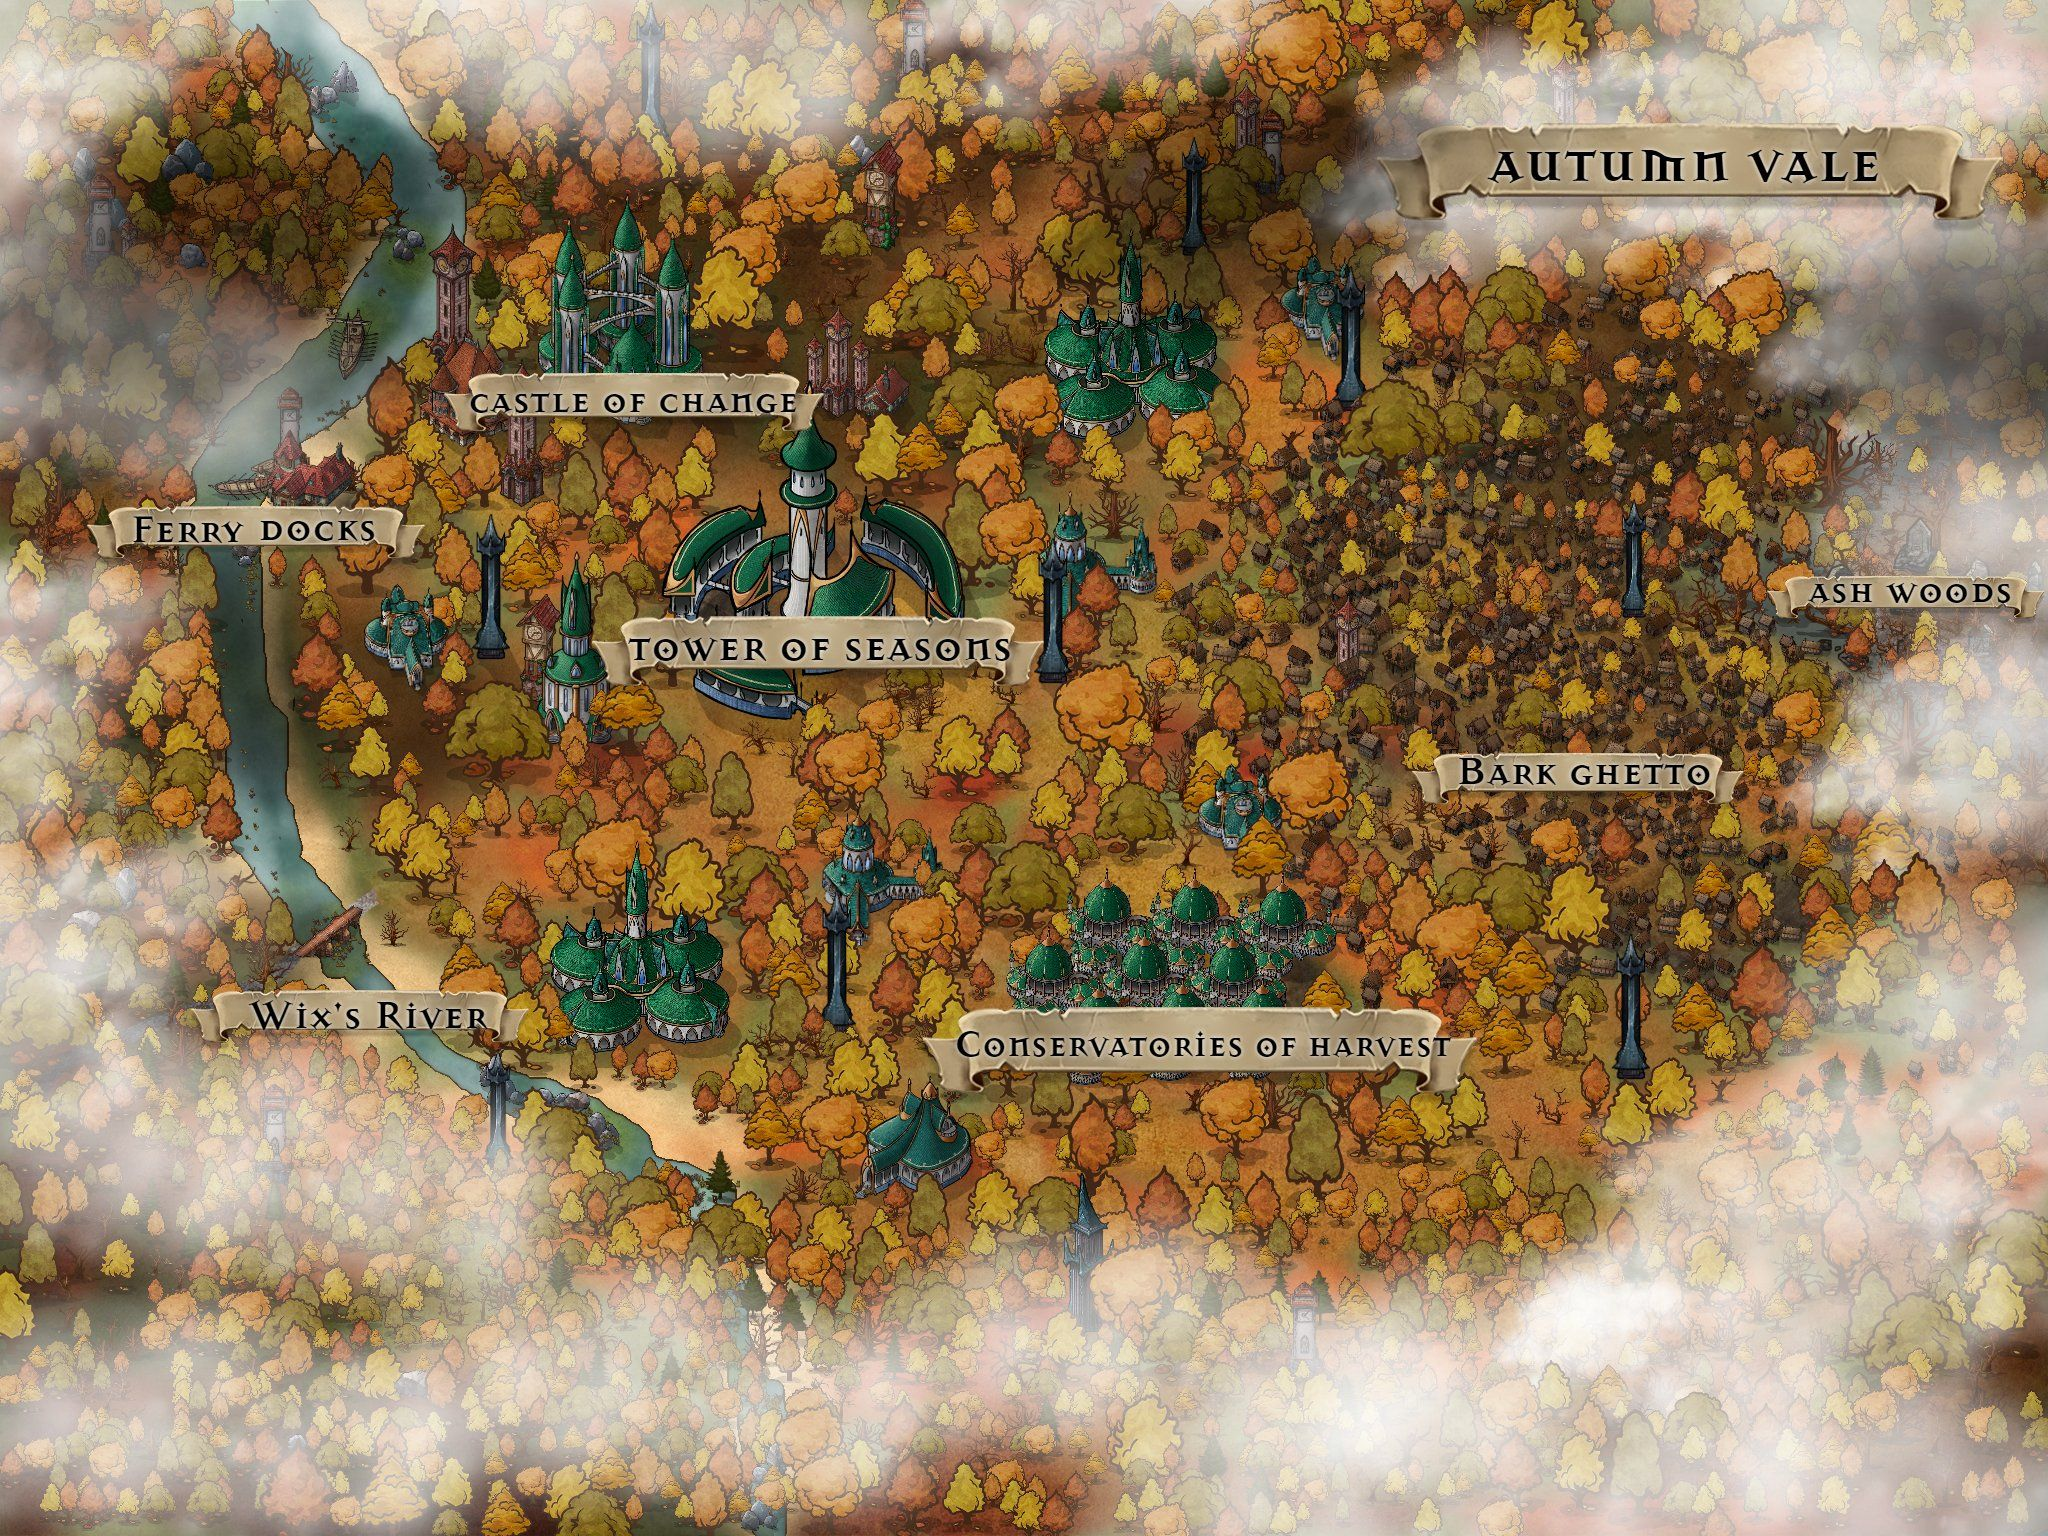 Autumn vale high elven city occupied by drow and stuck